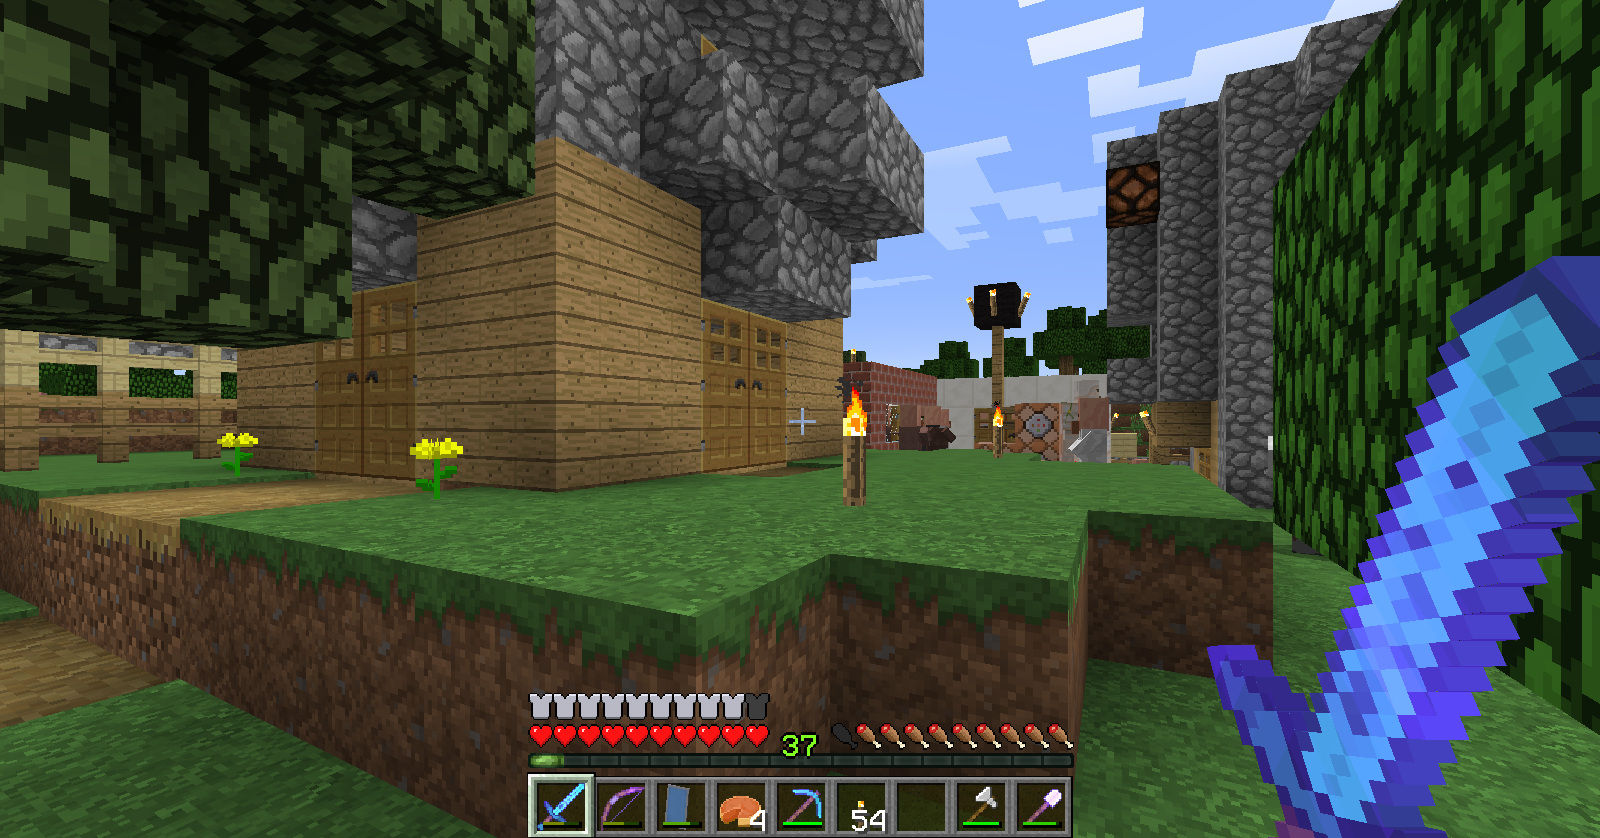 How do you test for a baby villager? - Discussion - Minecraft: Java